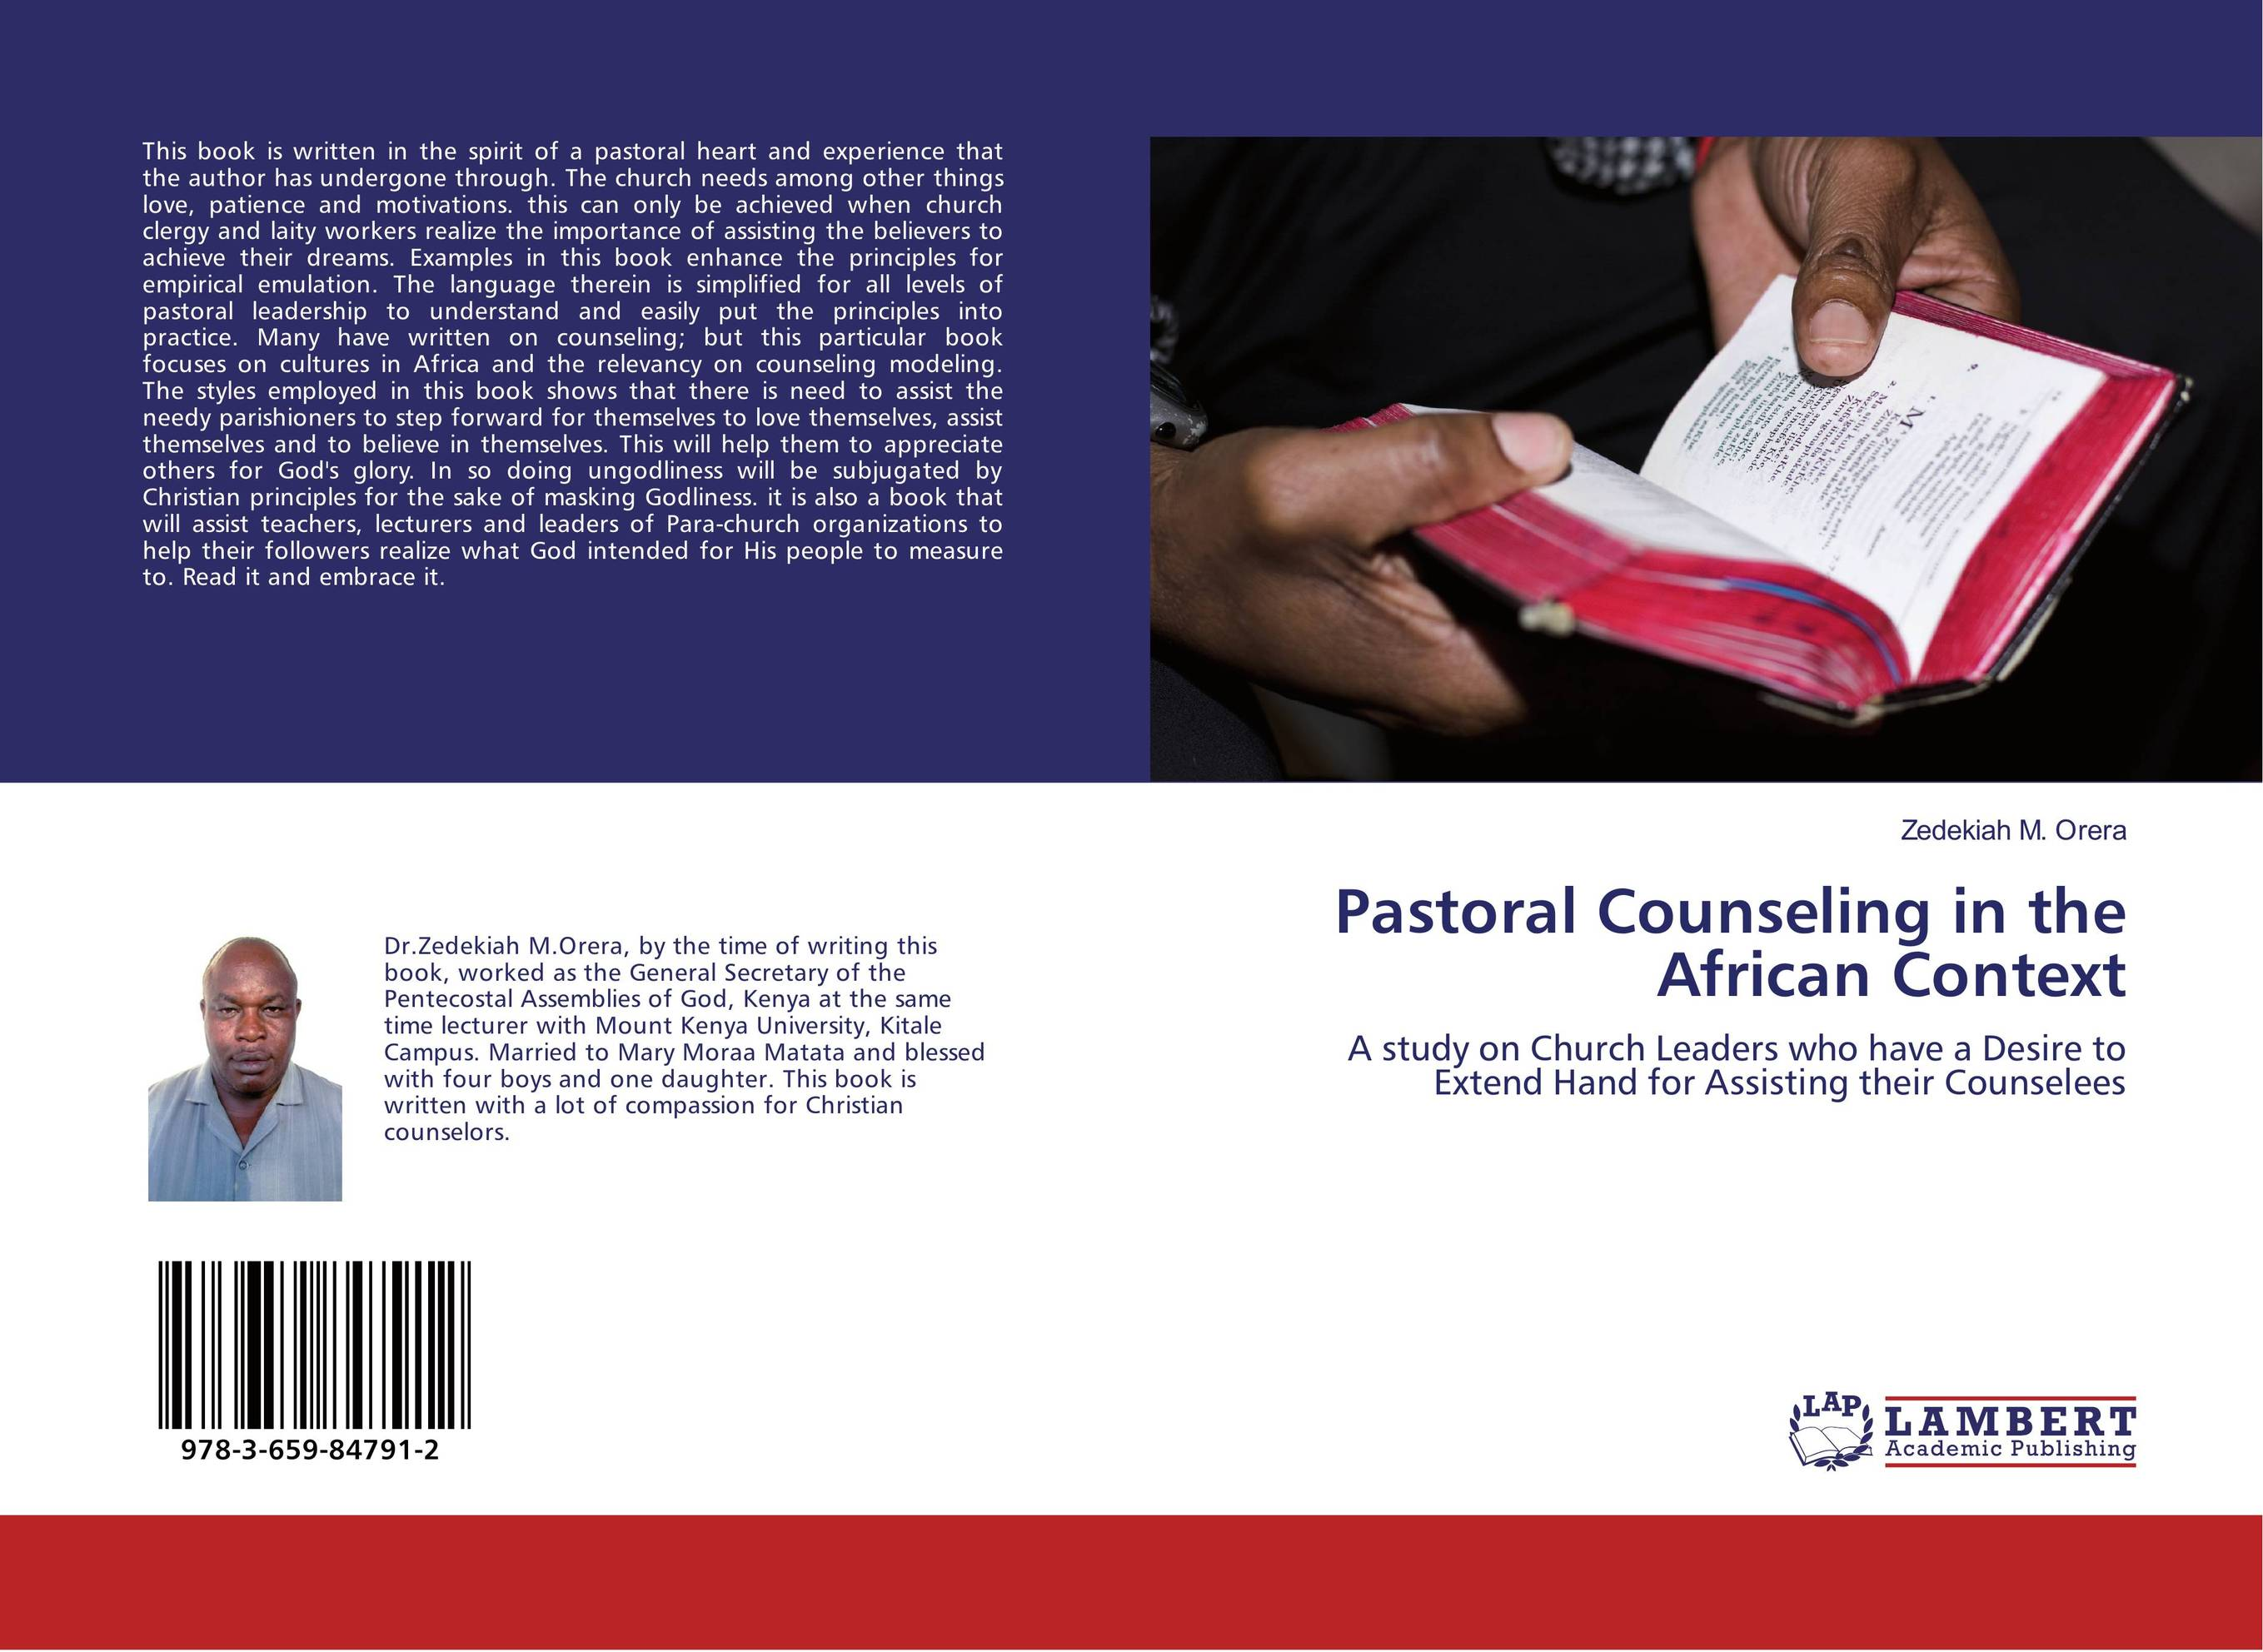 Pastoral Counseling in the African Context teenagers and their counseling needs